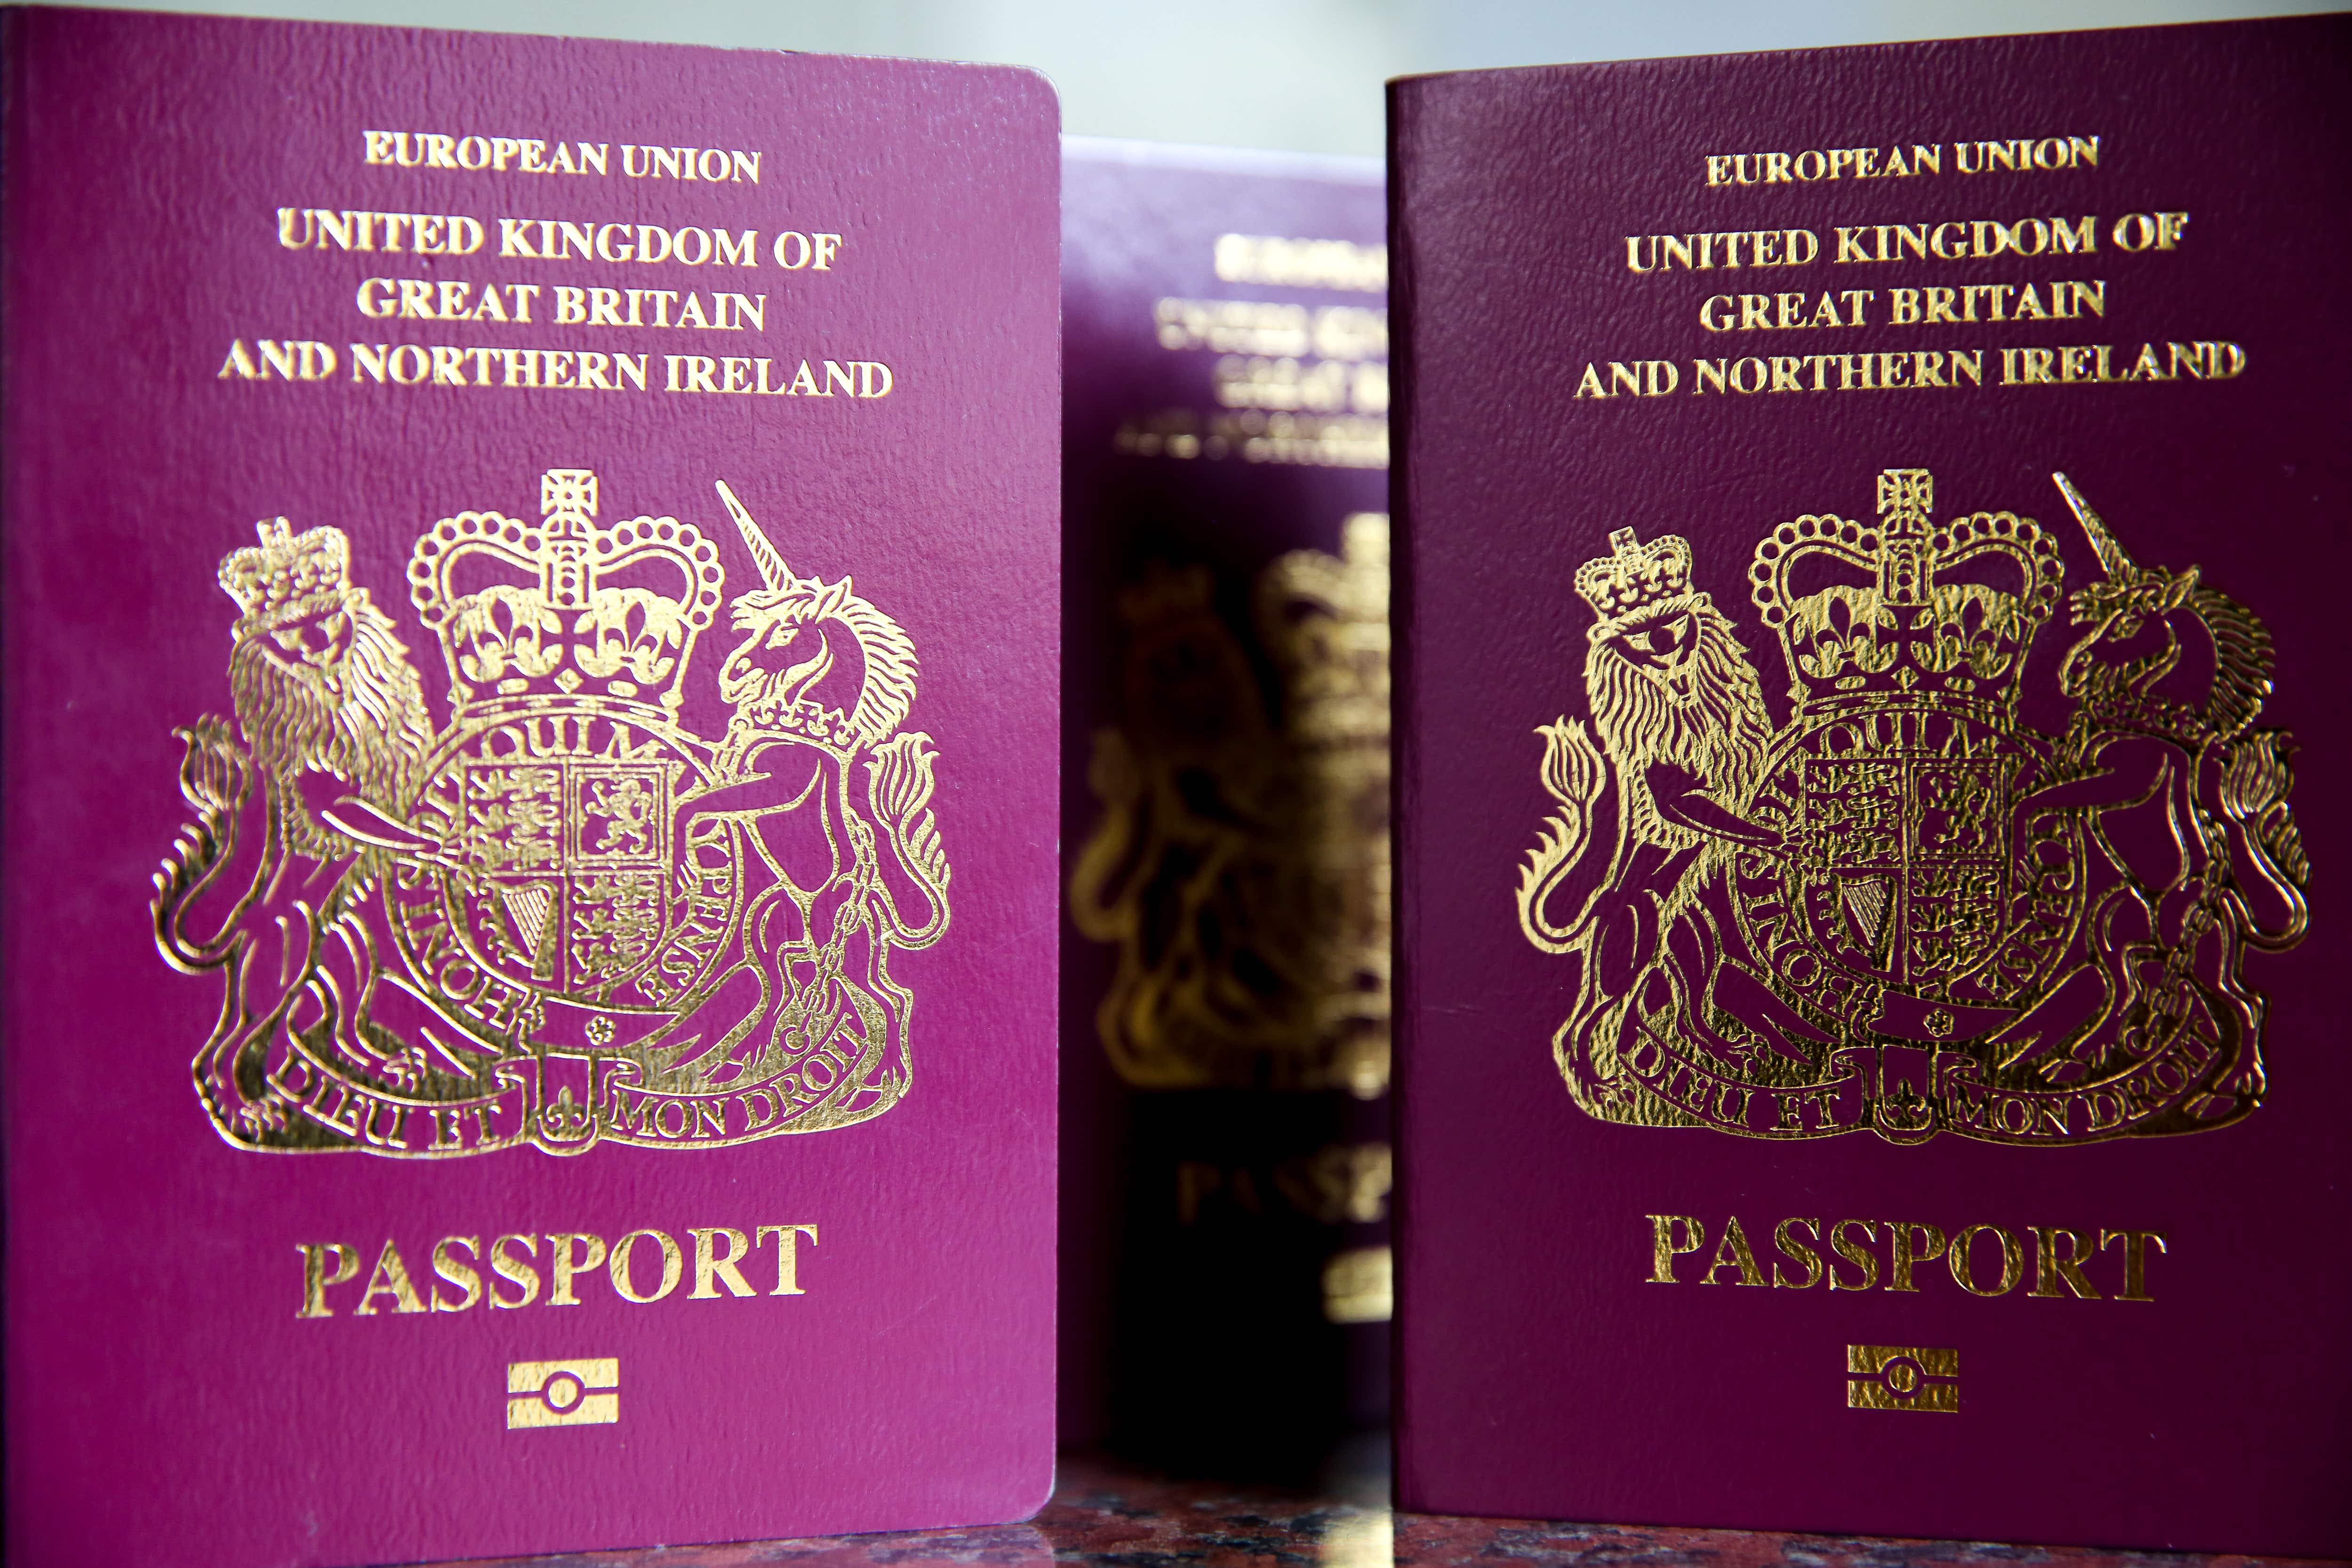 The UK government has launched a travel checklist for British citizens in the event of a no deal Brexit. Image by Getty Images